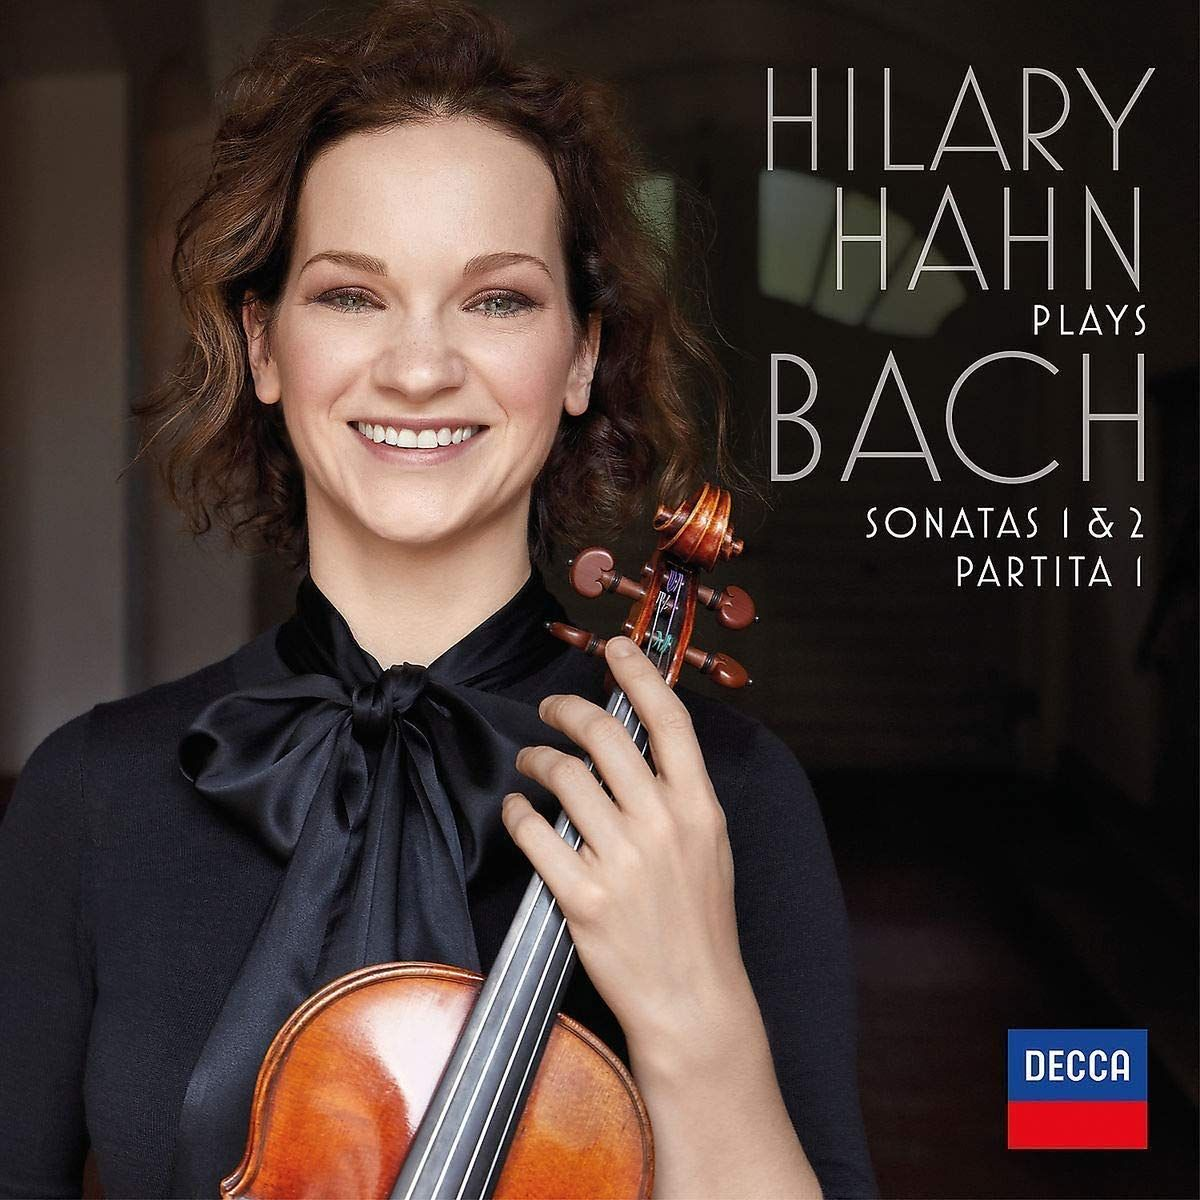 Хилари Хан Hilary Hahn. Bach: Violin Sonatas Nos. 1 & 2; Partita No. (2 LP)